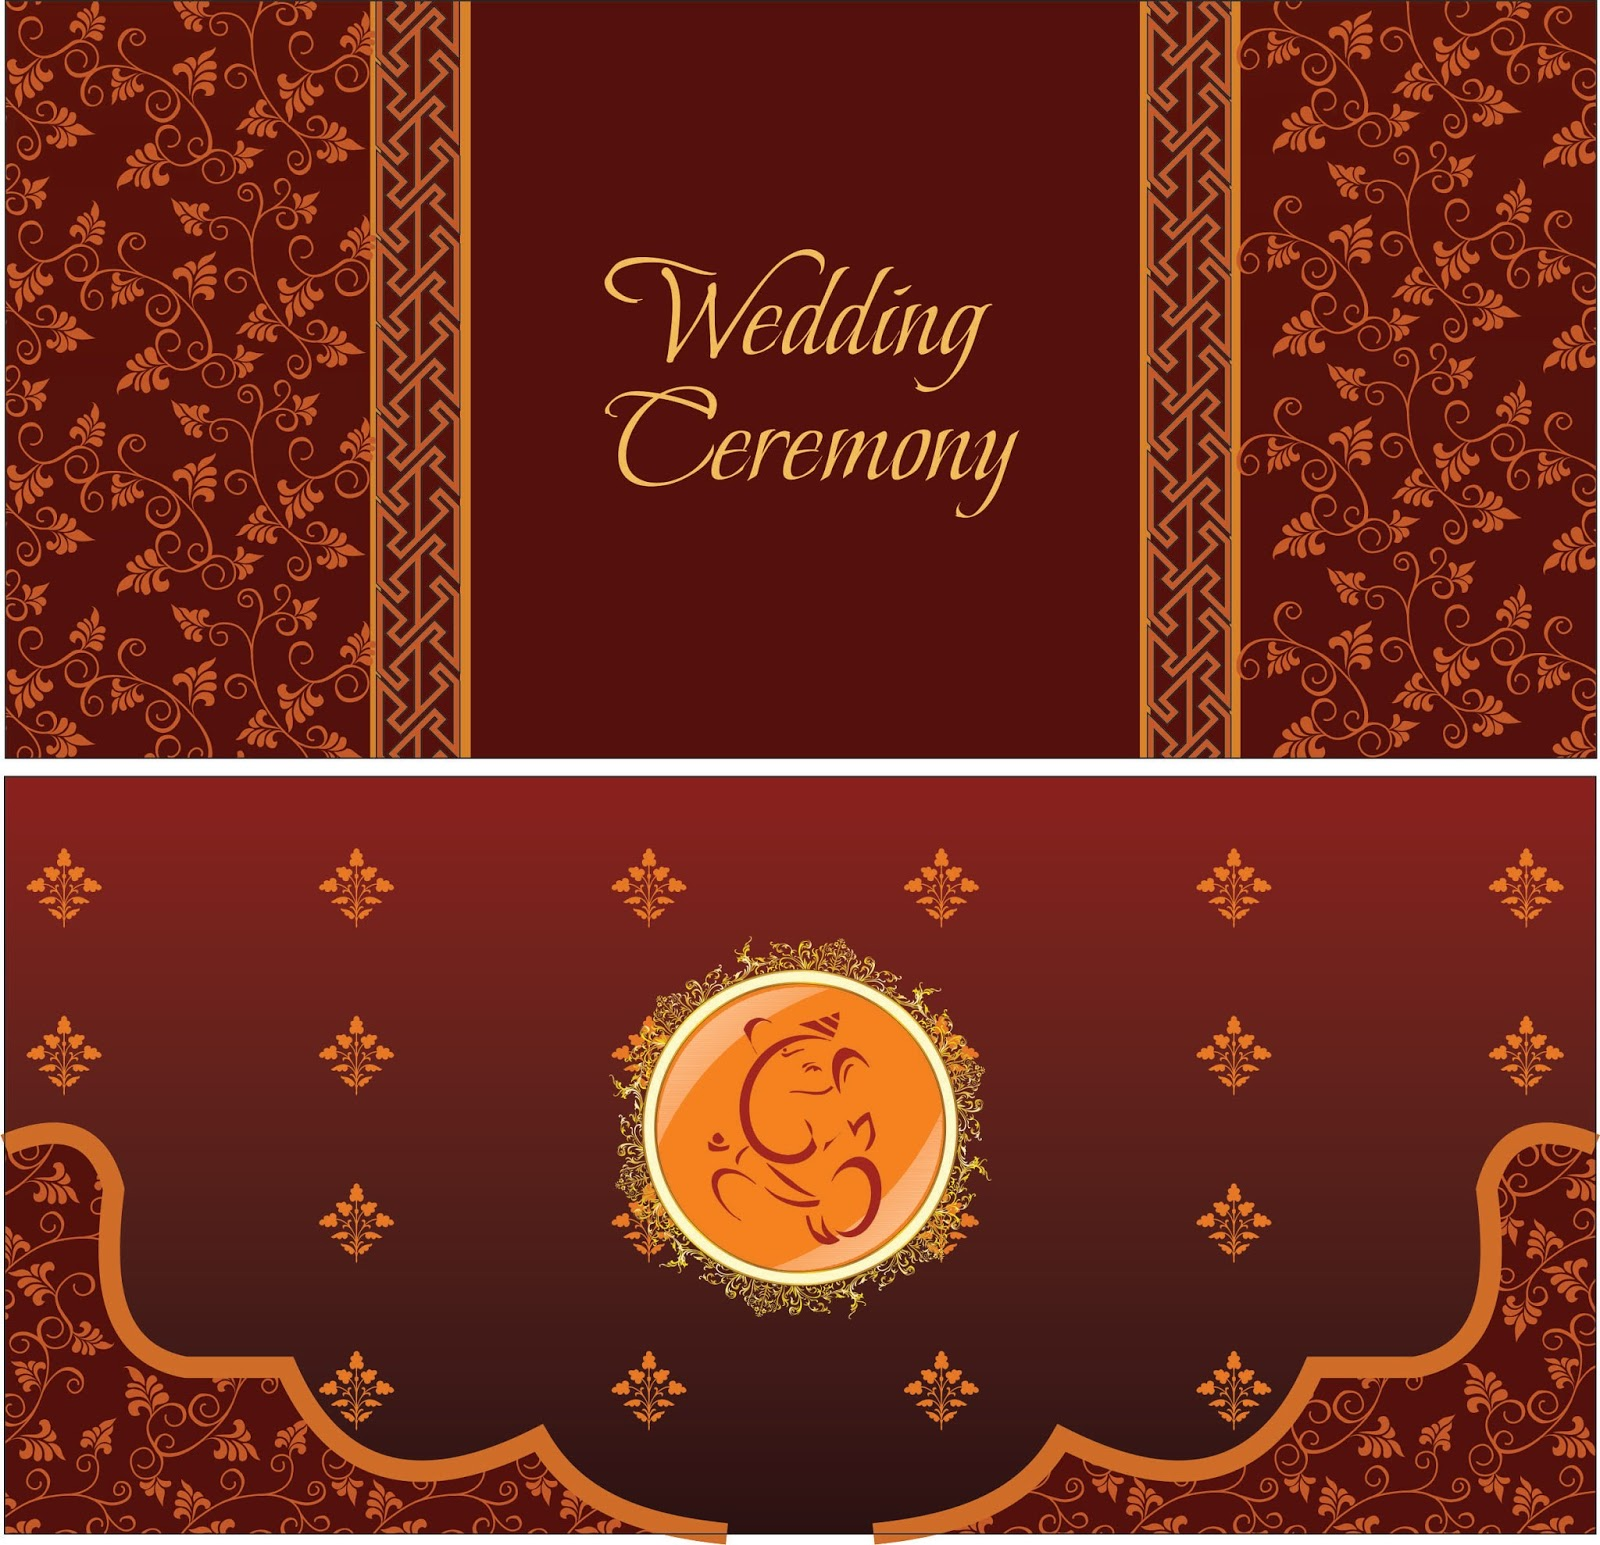 Hindu Wedding Card Graphic Design Cdr File Calligraphy